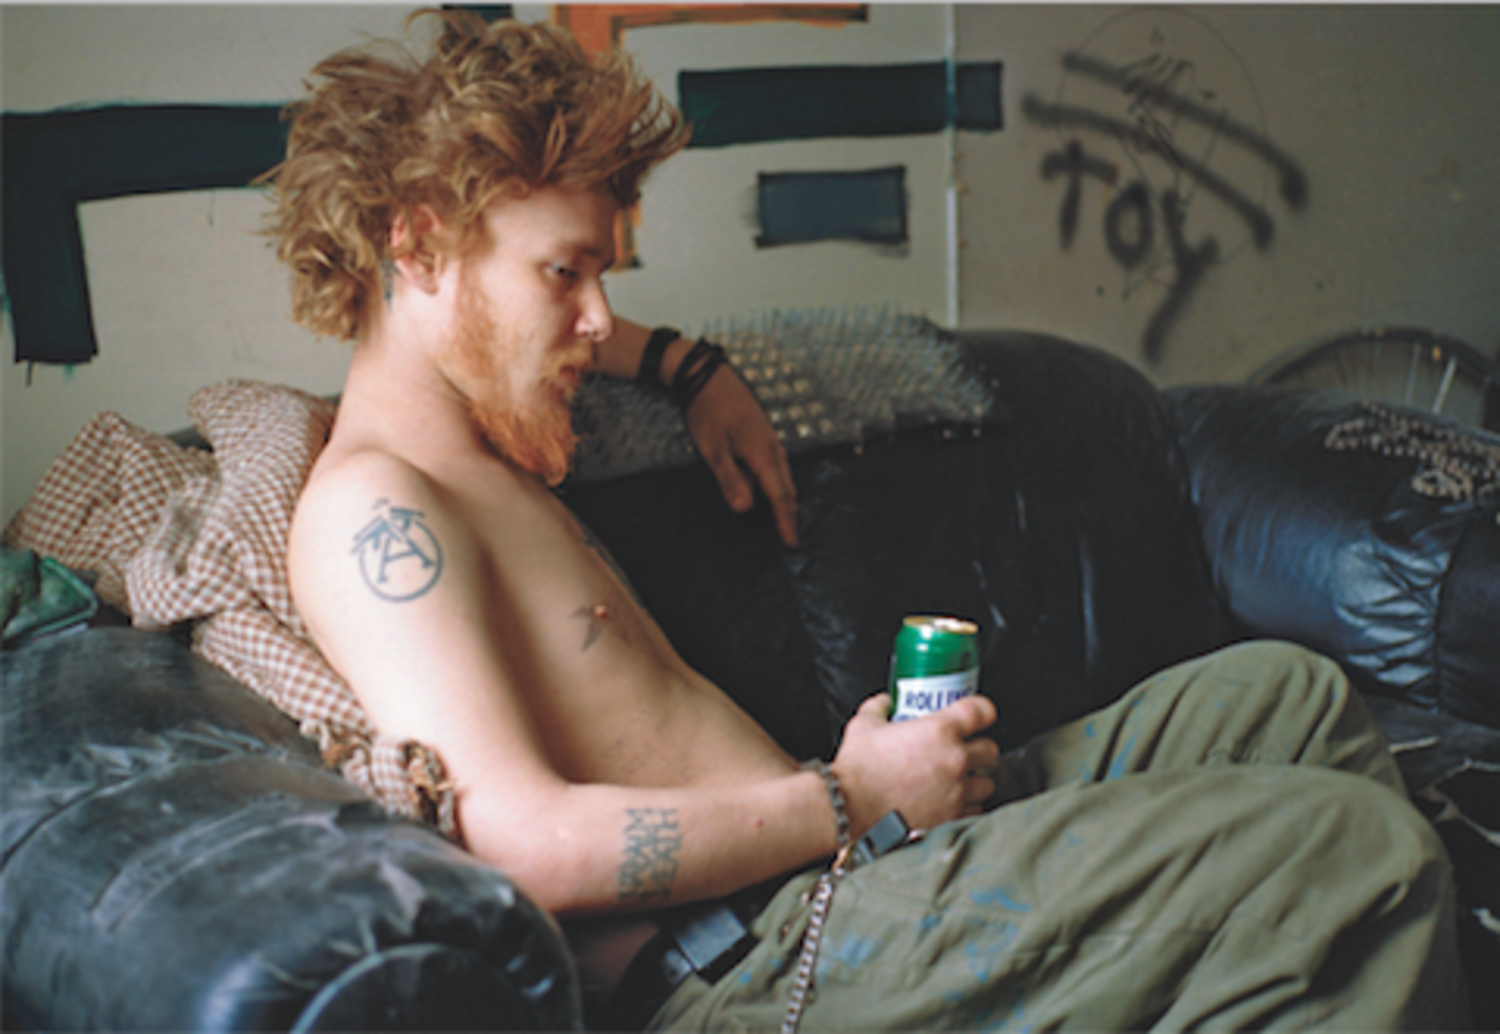 Ryan on Couch (Toy), Fifth Street Squat, 1995